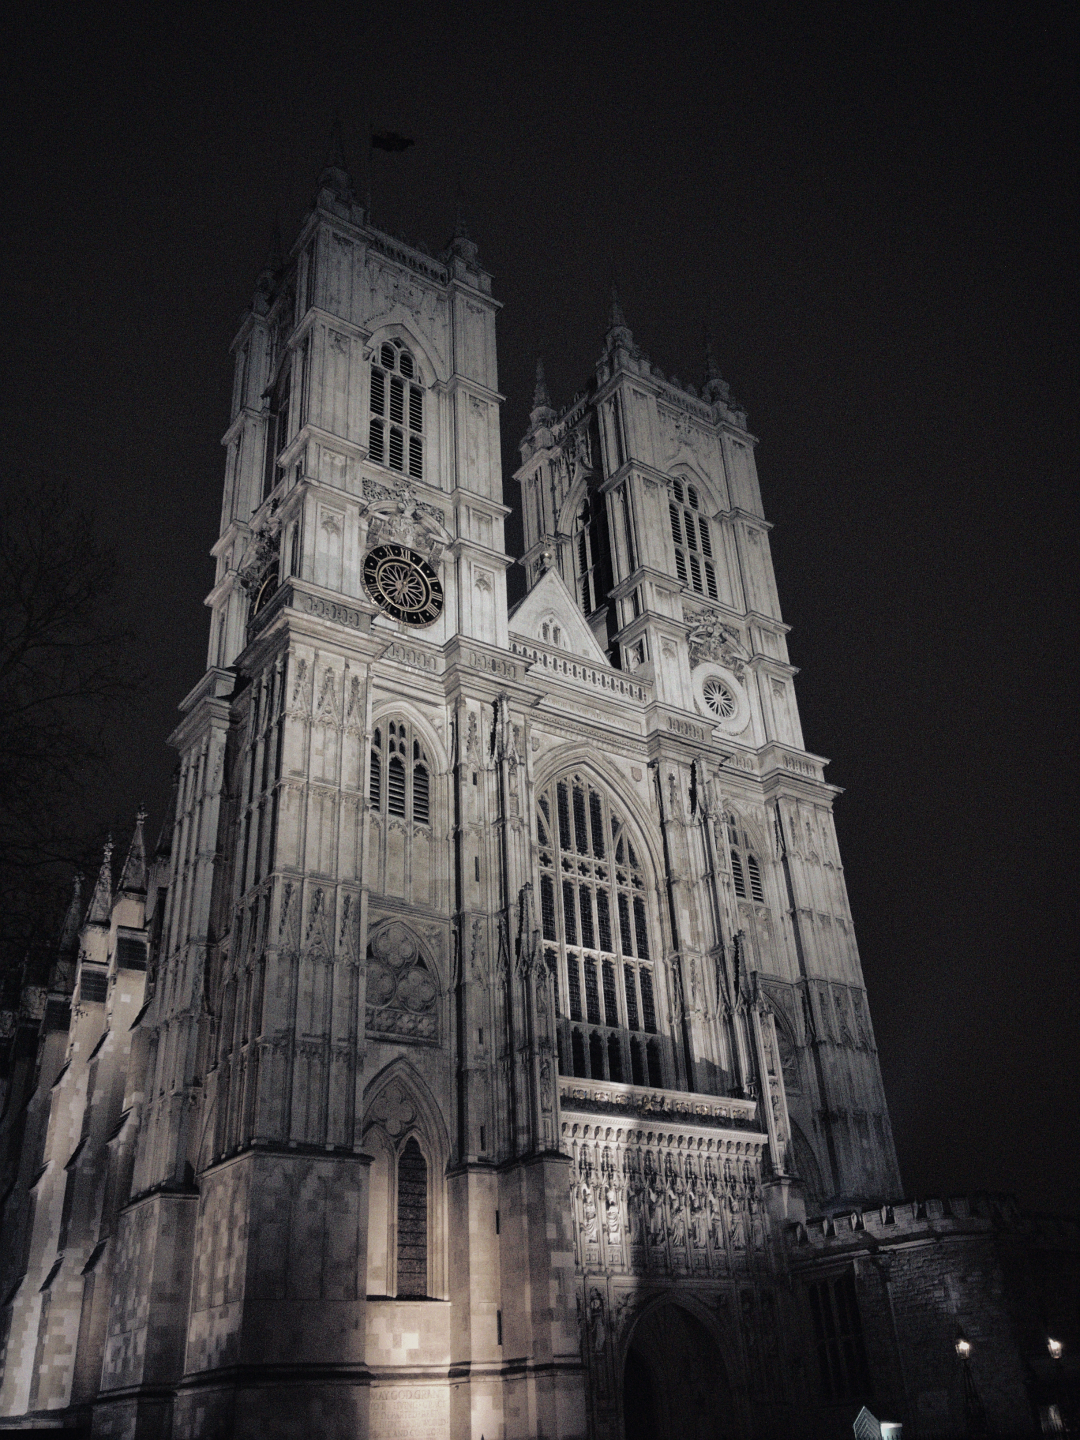 Westminster Abbey at night, photographed on 18 March 2016